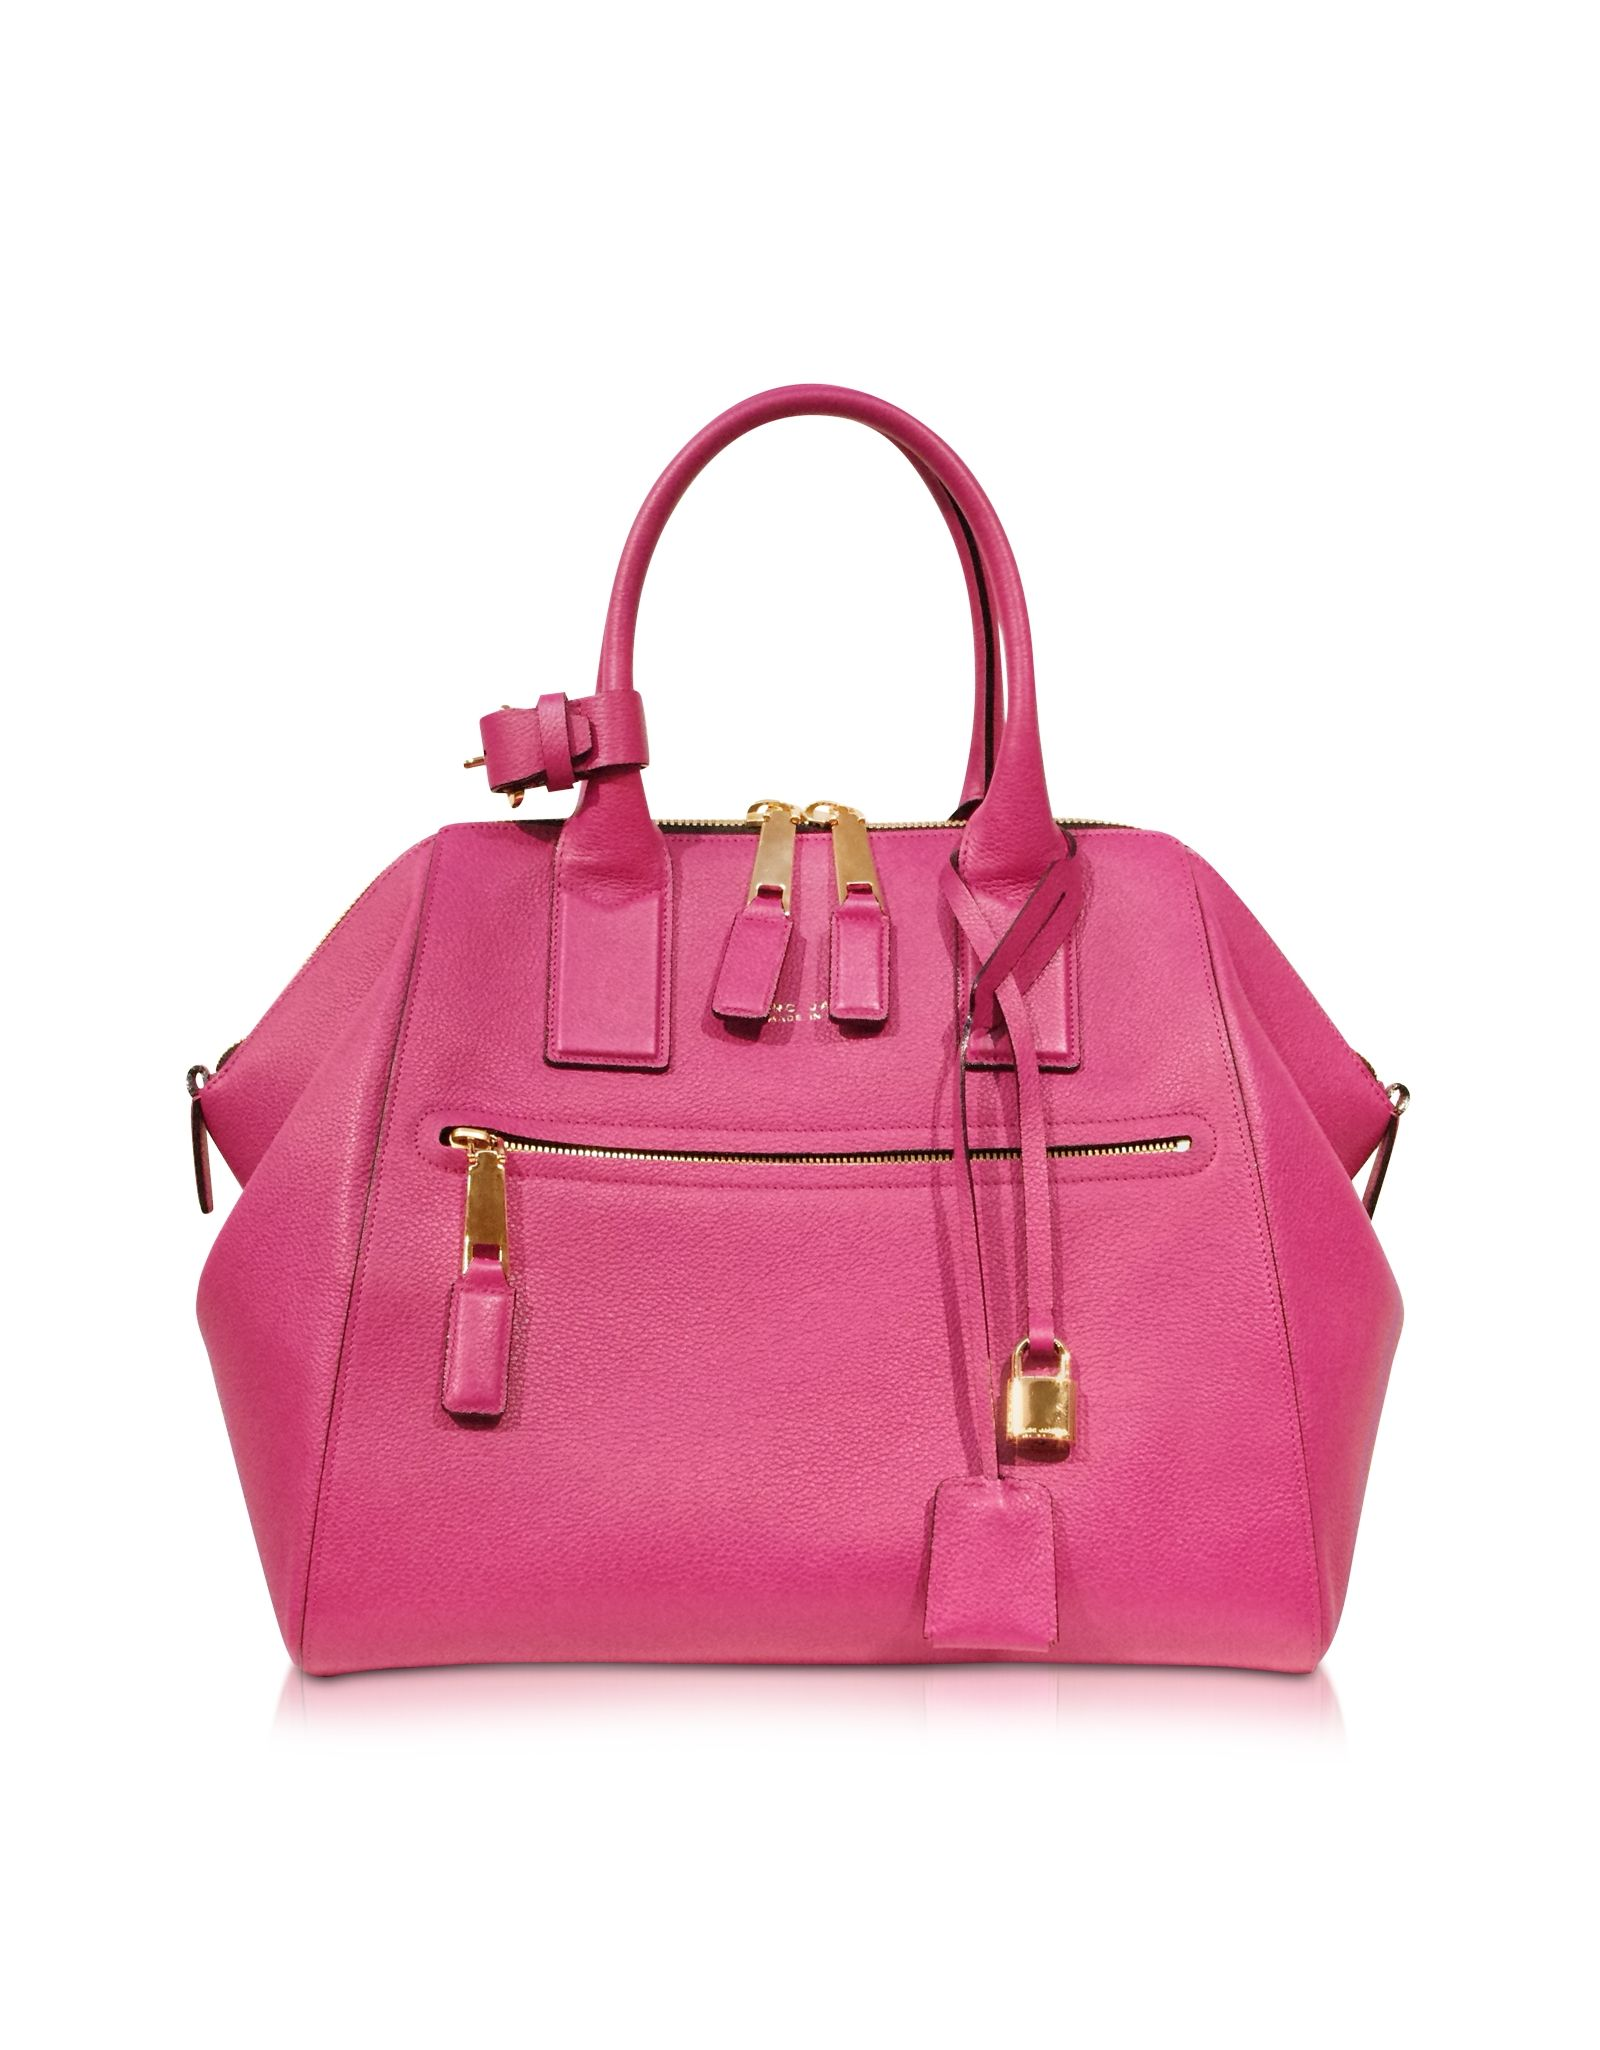 48a5467c4db Marc Jacobs Textured Large Raspberry Incognito Satchel at FORZIERI Marc  Jacobs Tote, Calf Leather,